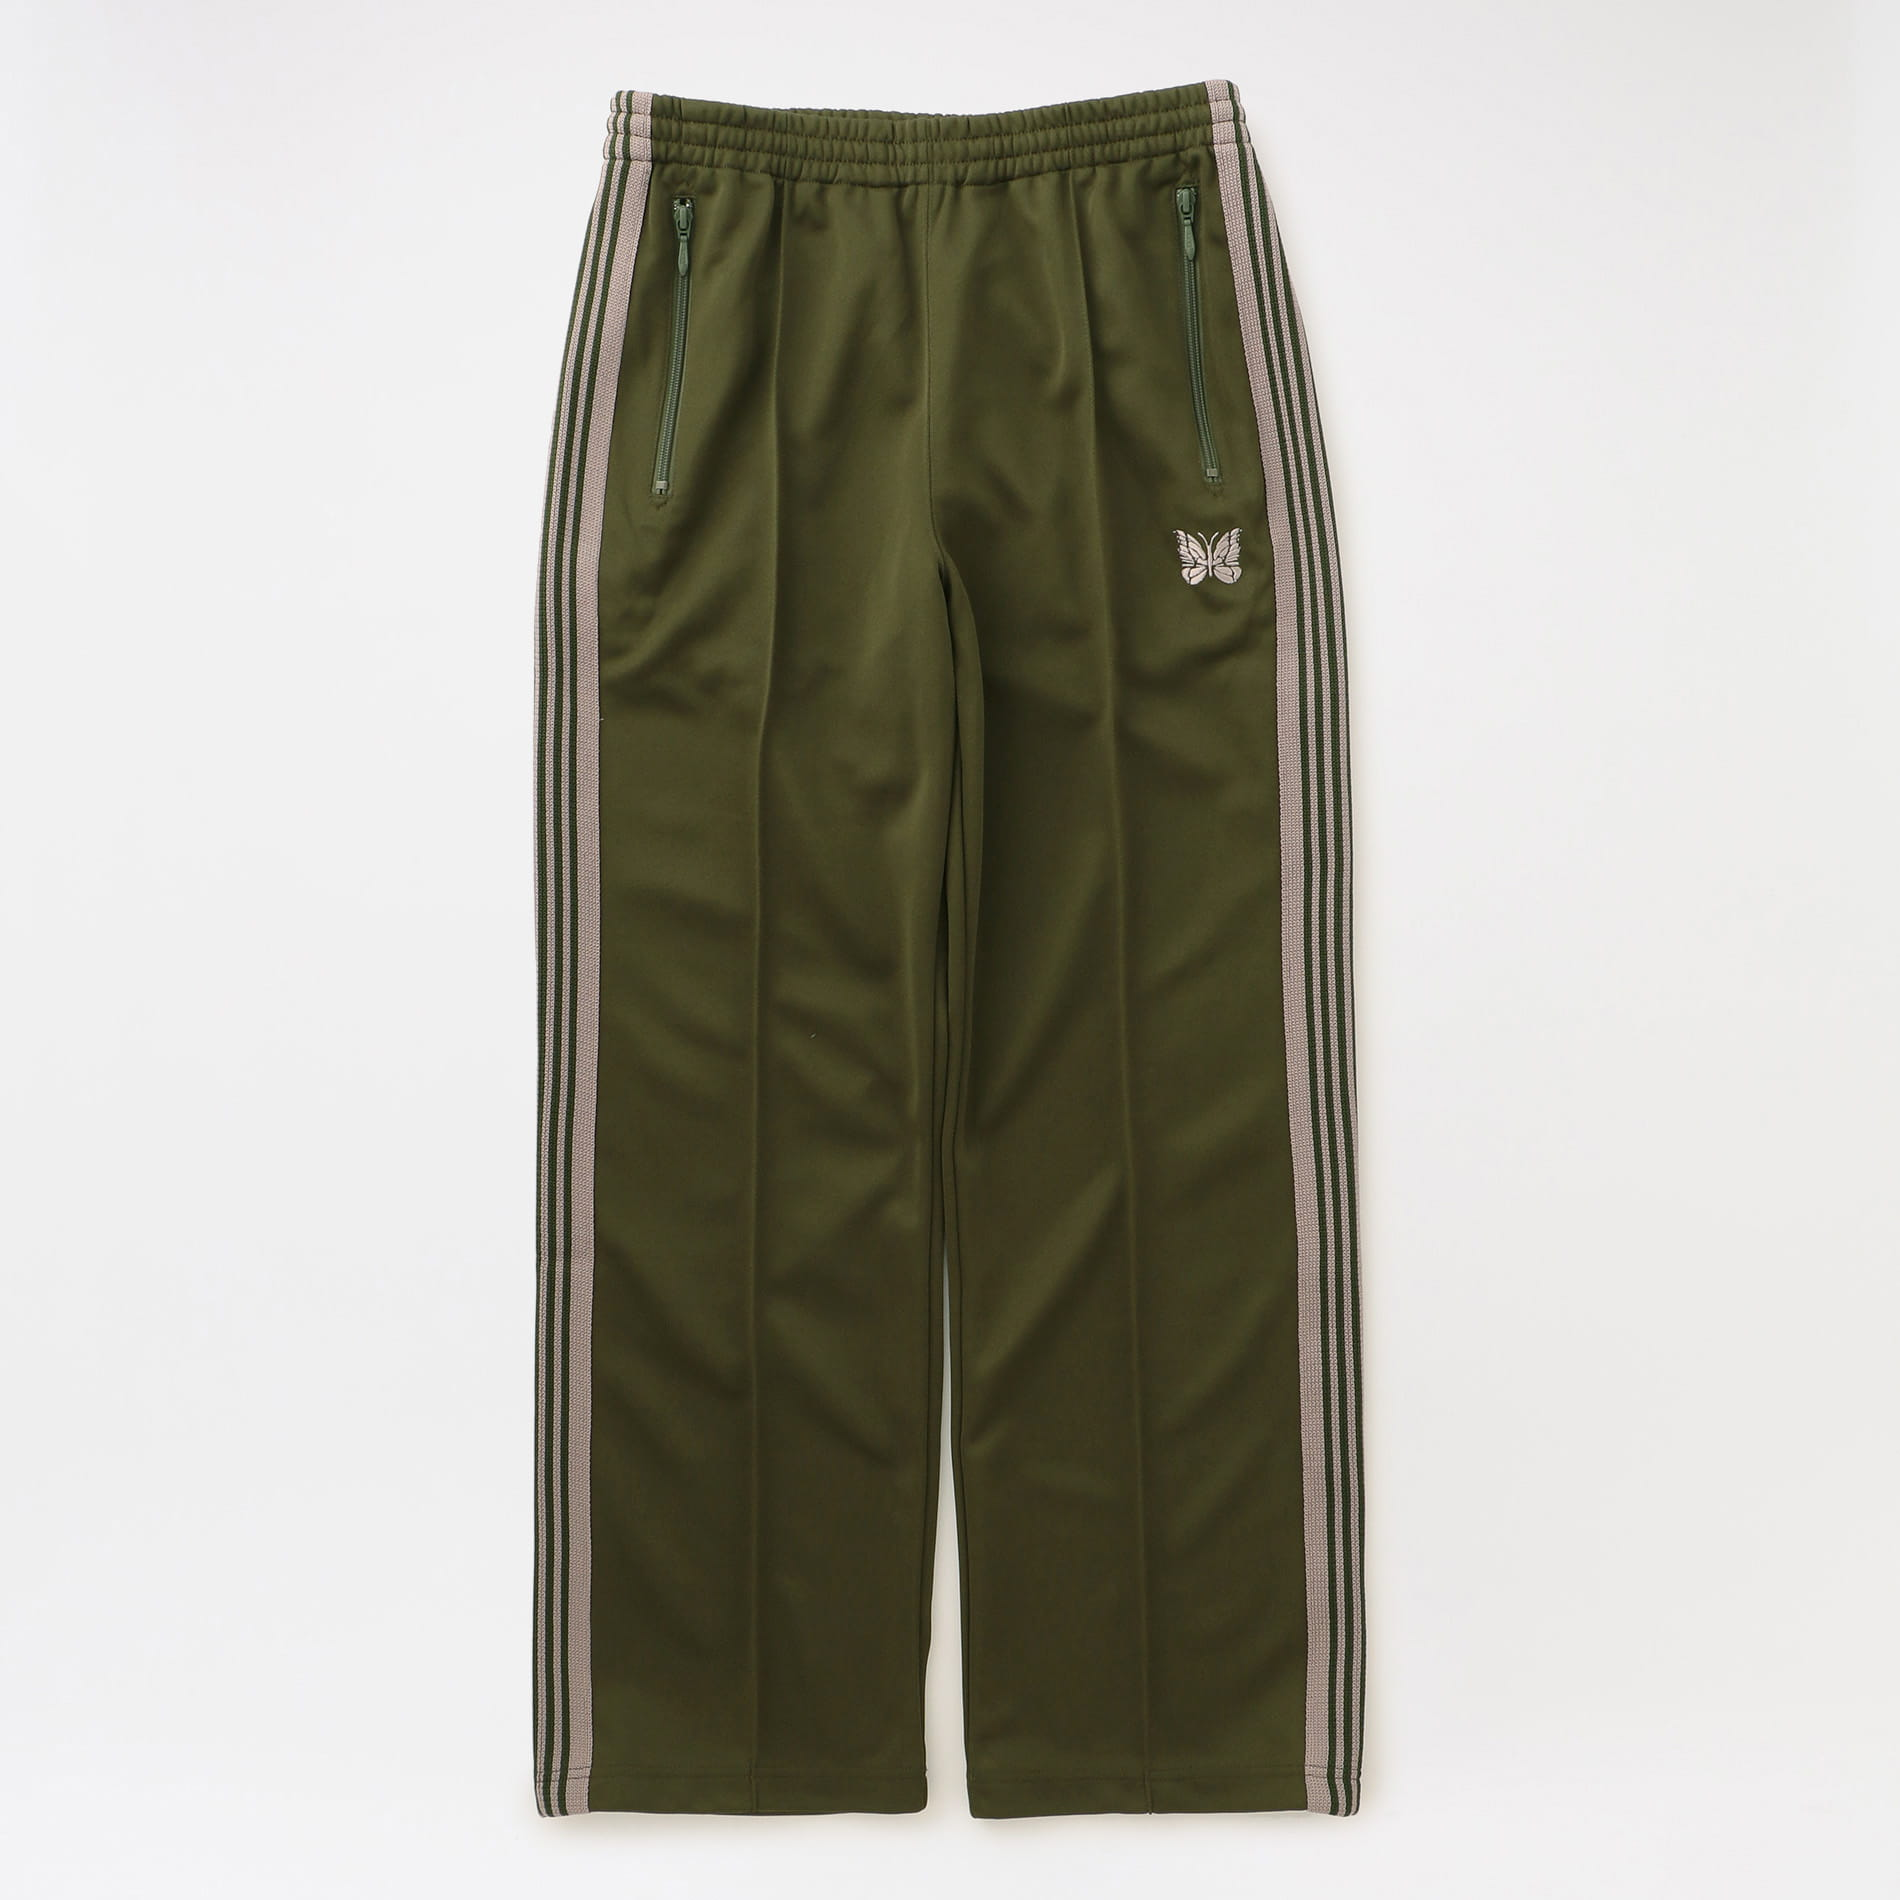 【Needles】MEN Track Pant - Poly Smooth HM226